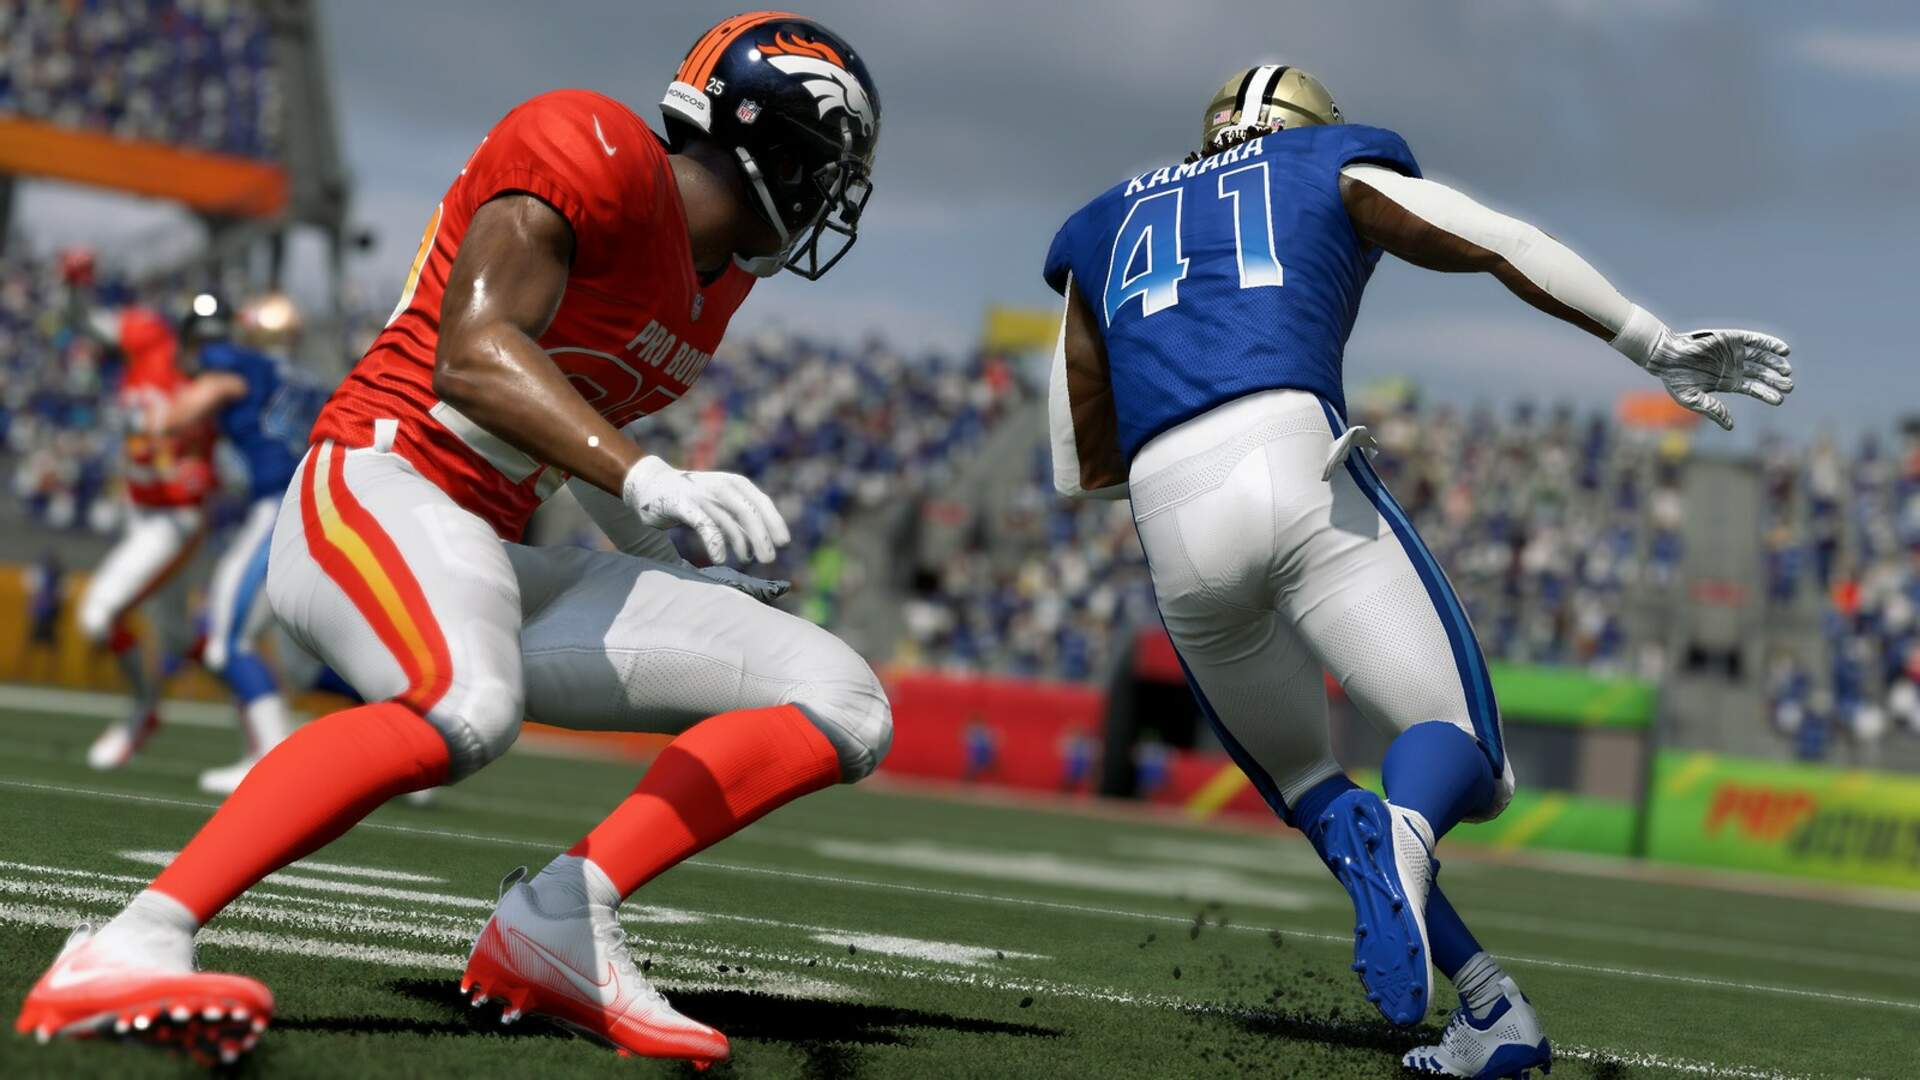 Madden 20 Gets a Gameplay Reveal and Ratings Performance Adjuster at EA Play